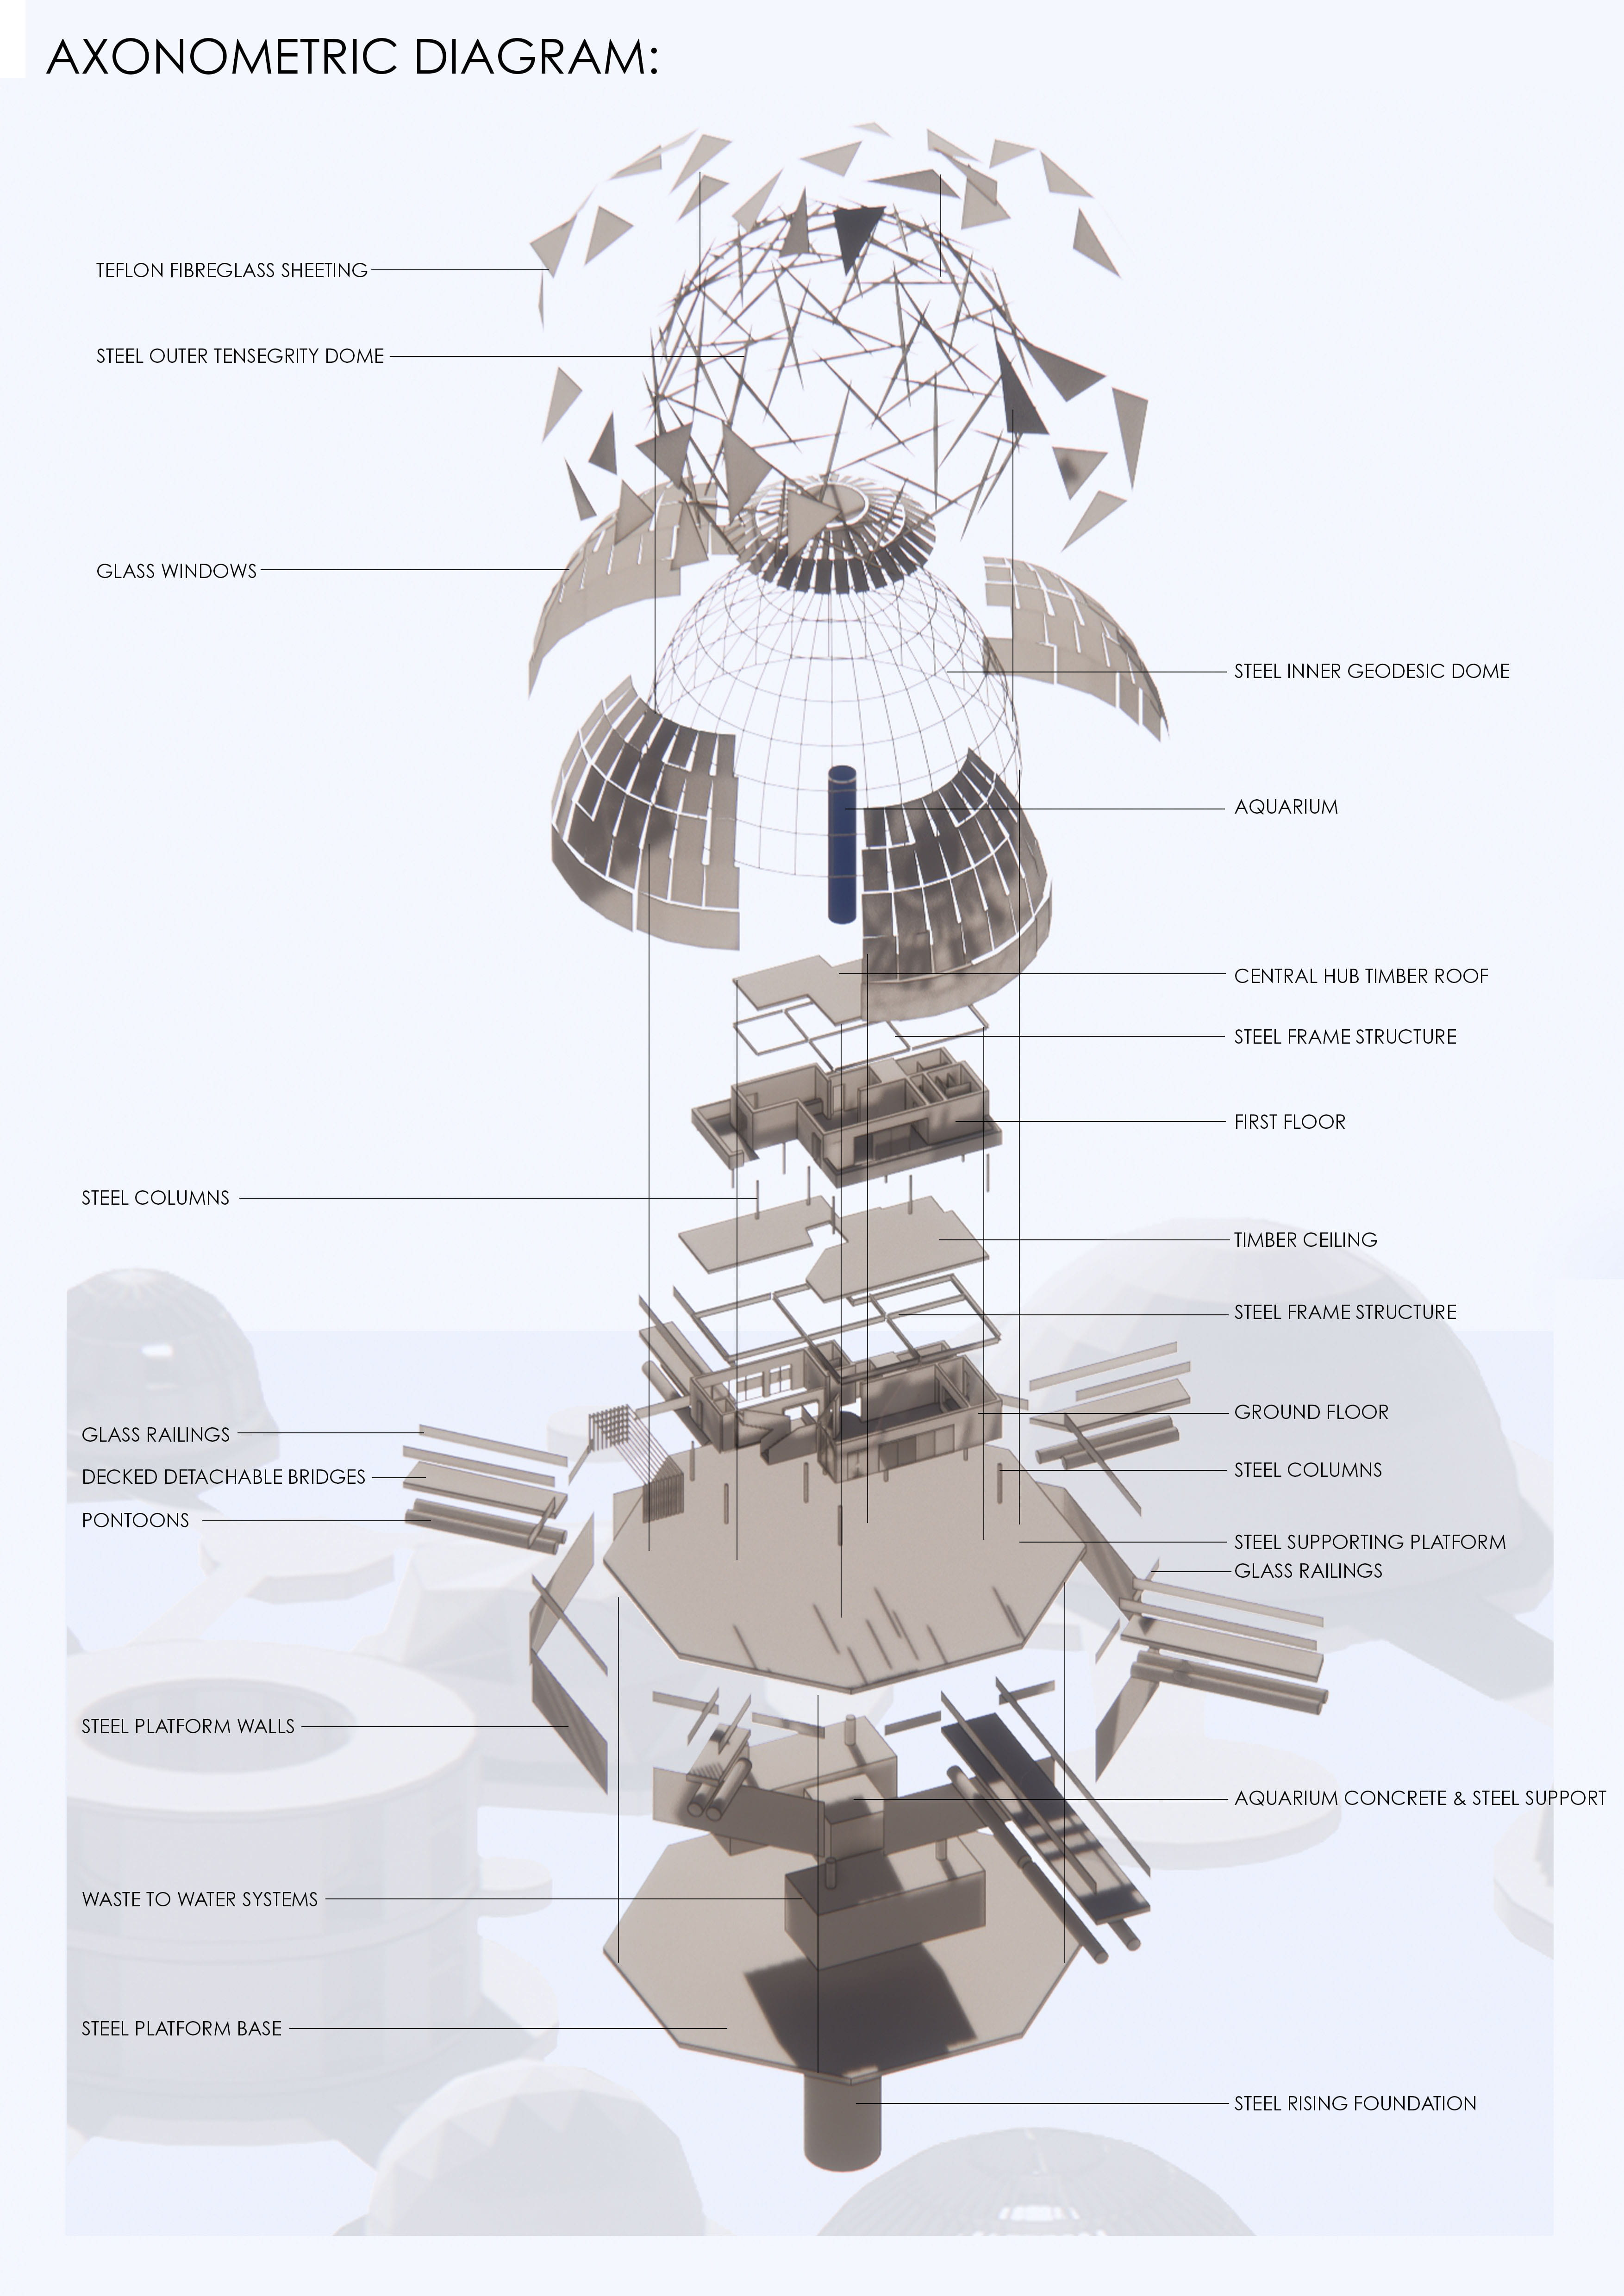 Exploded Axonometric showing how the elements work and fit together